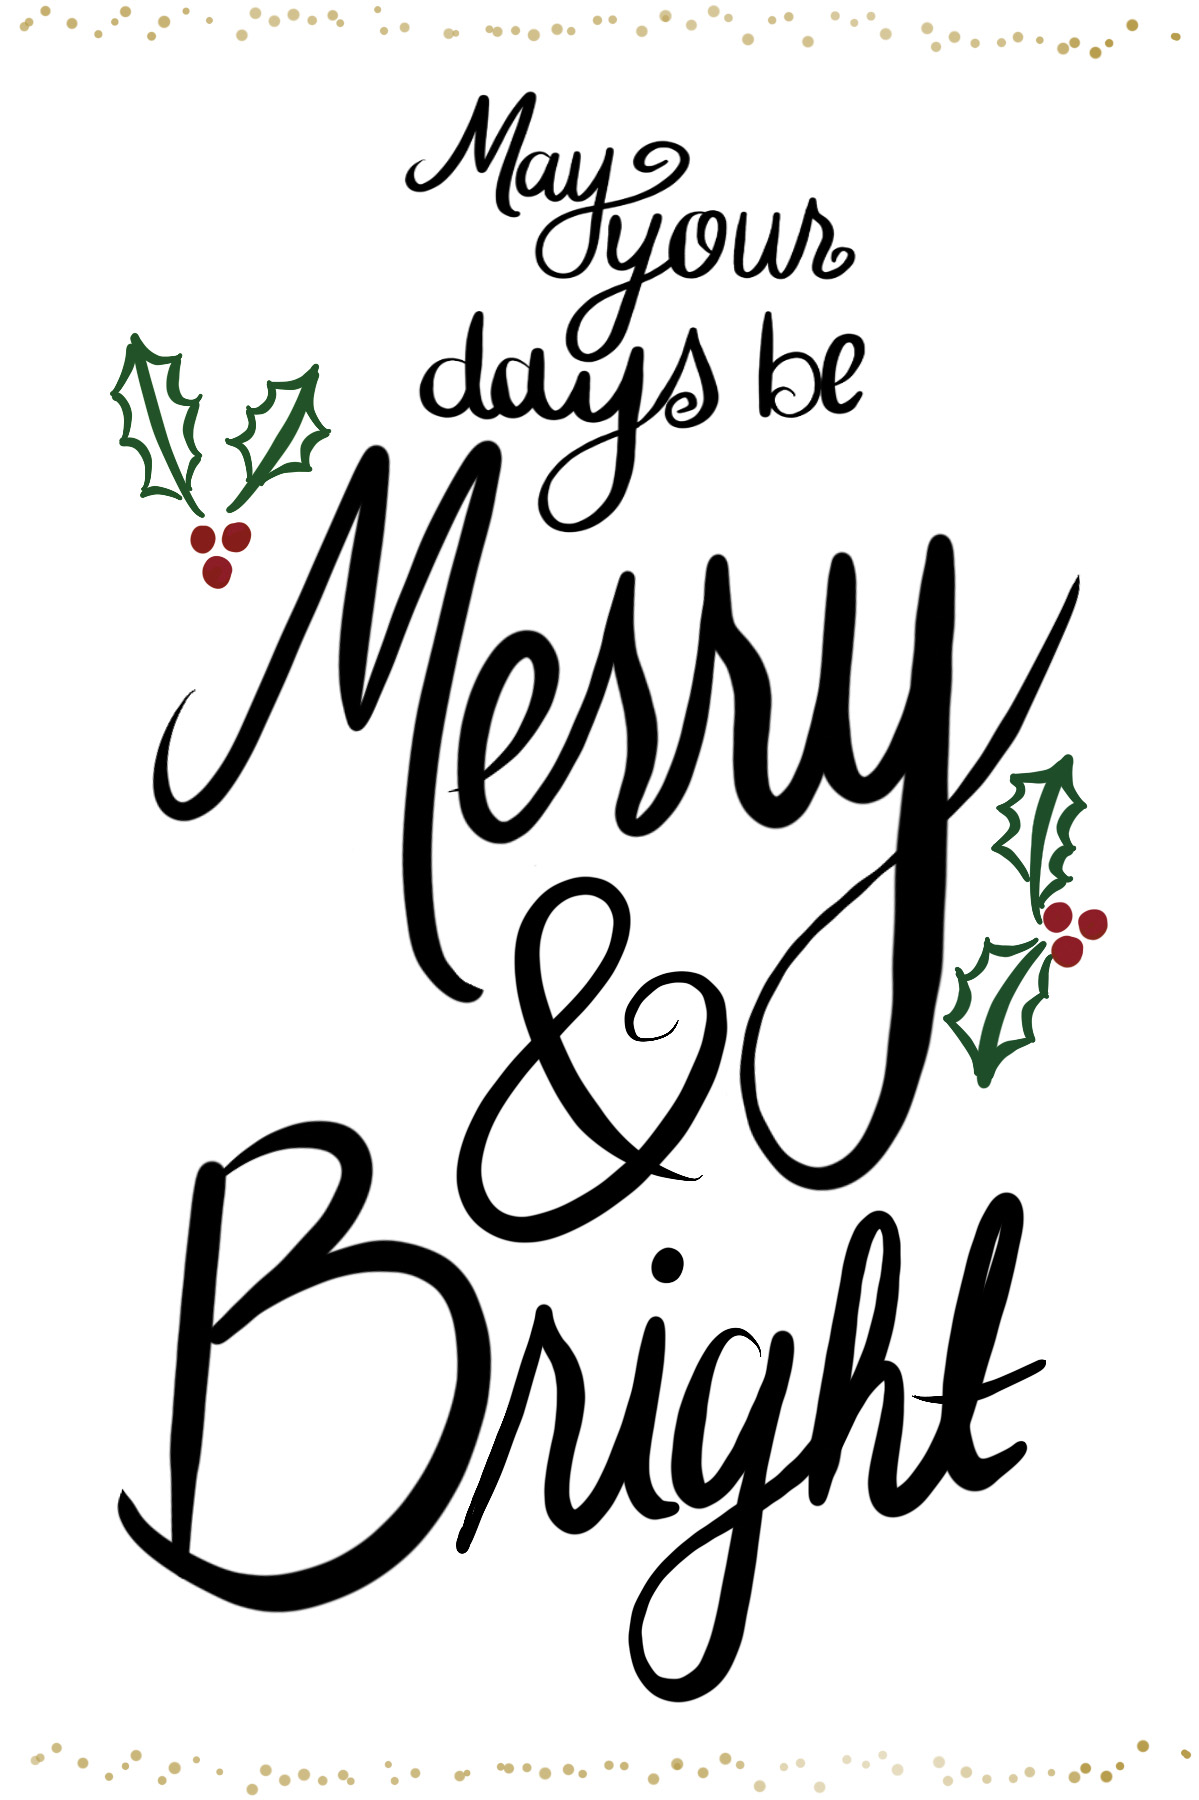 Merry and Bright Printable Fearless Tape Image.jpg